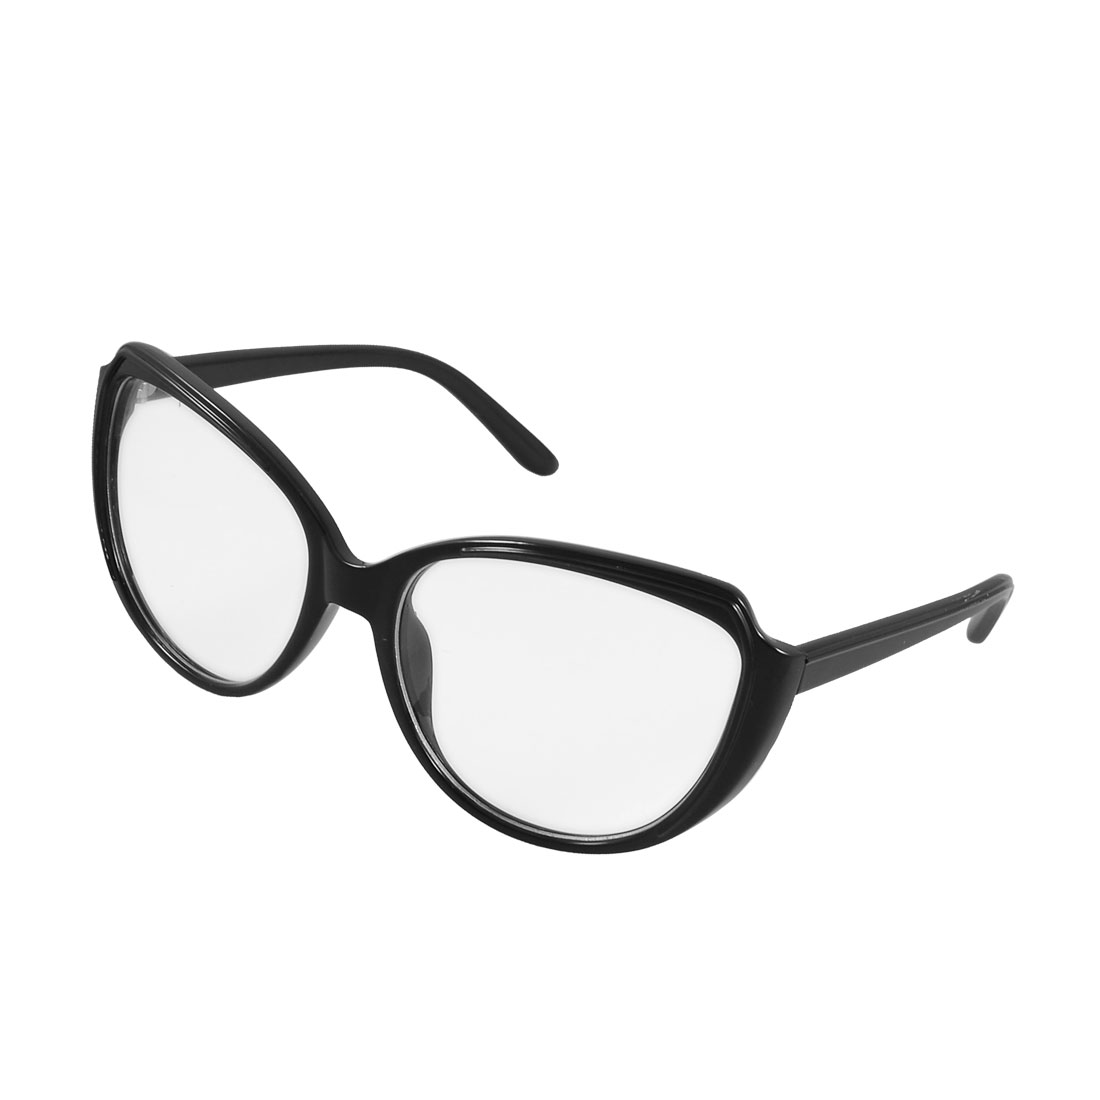 Women Black Plastic Single Bridge Elliptic Lens Plain Glasses